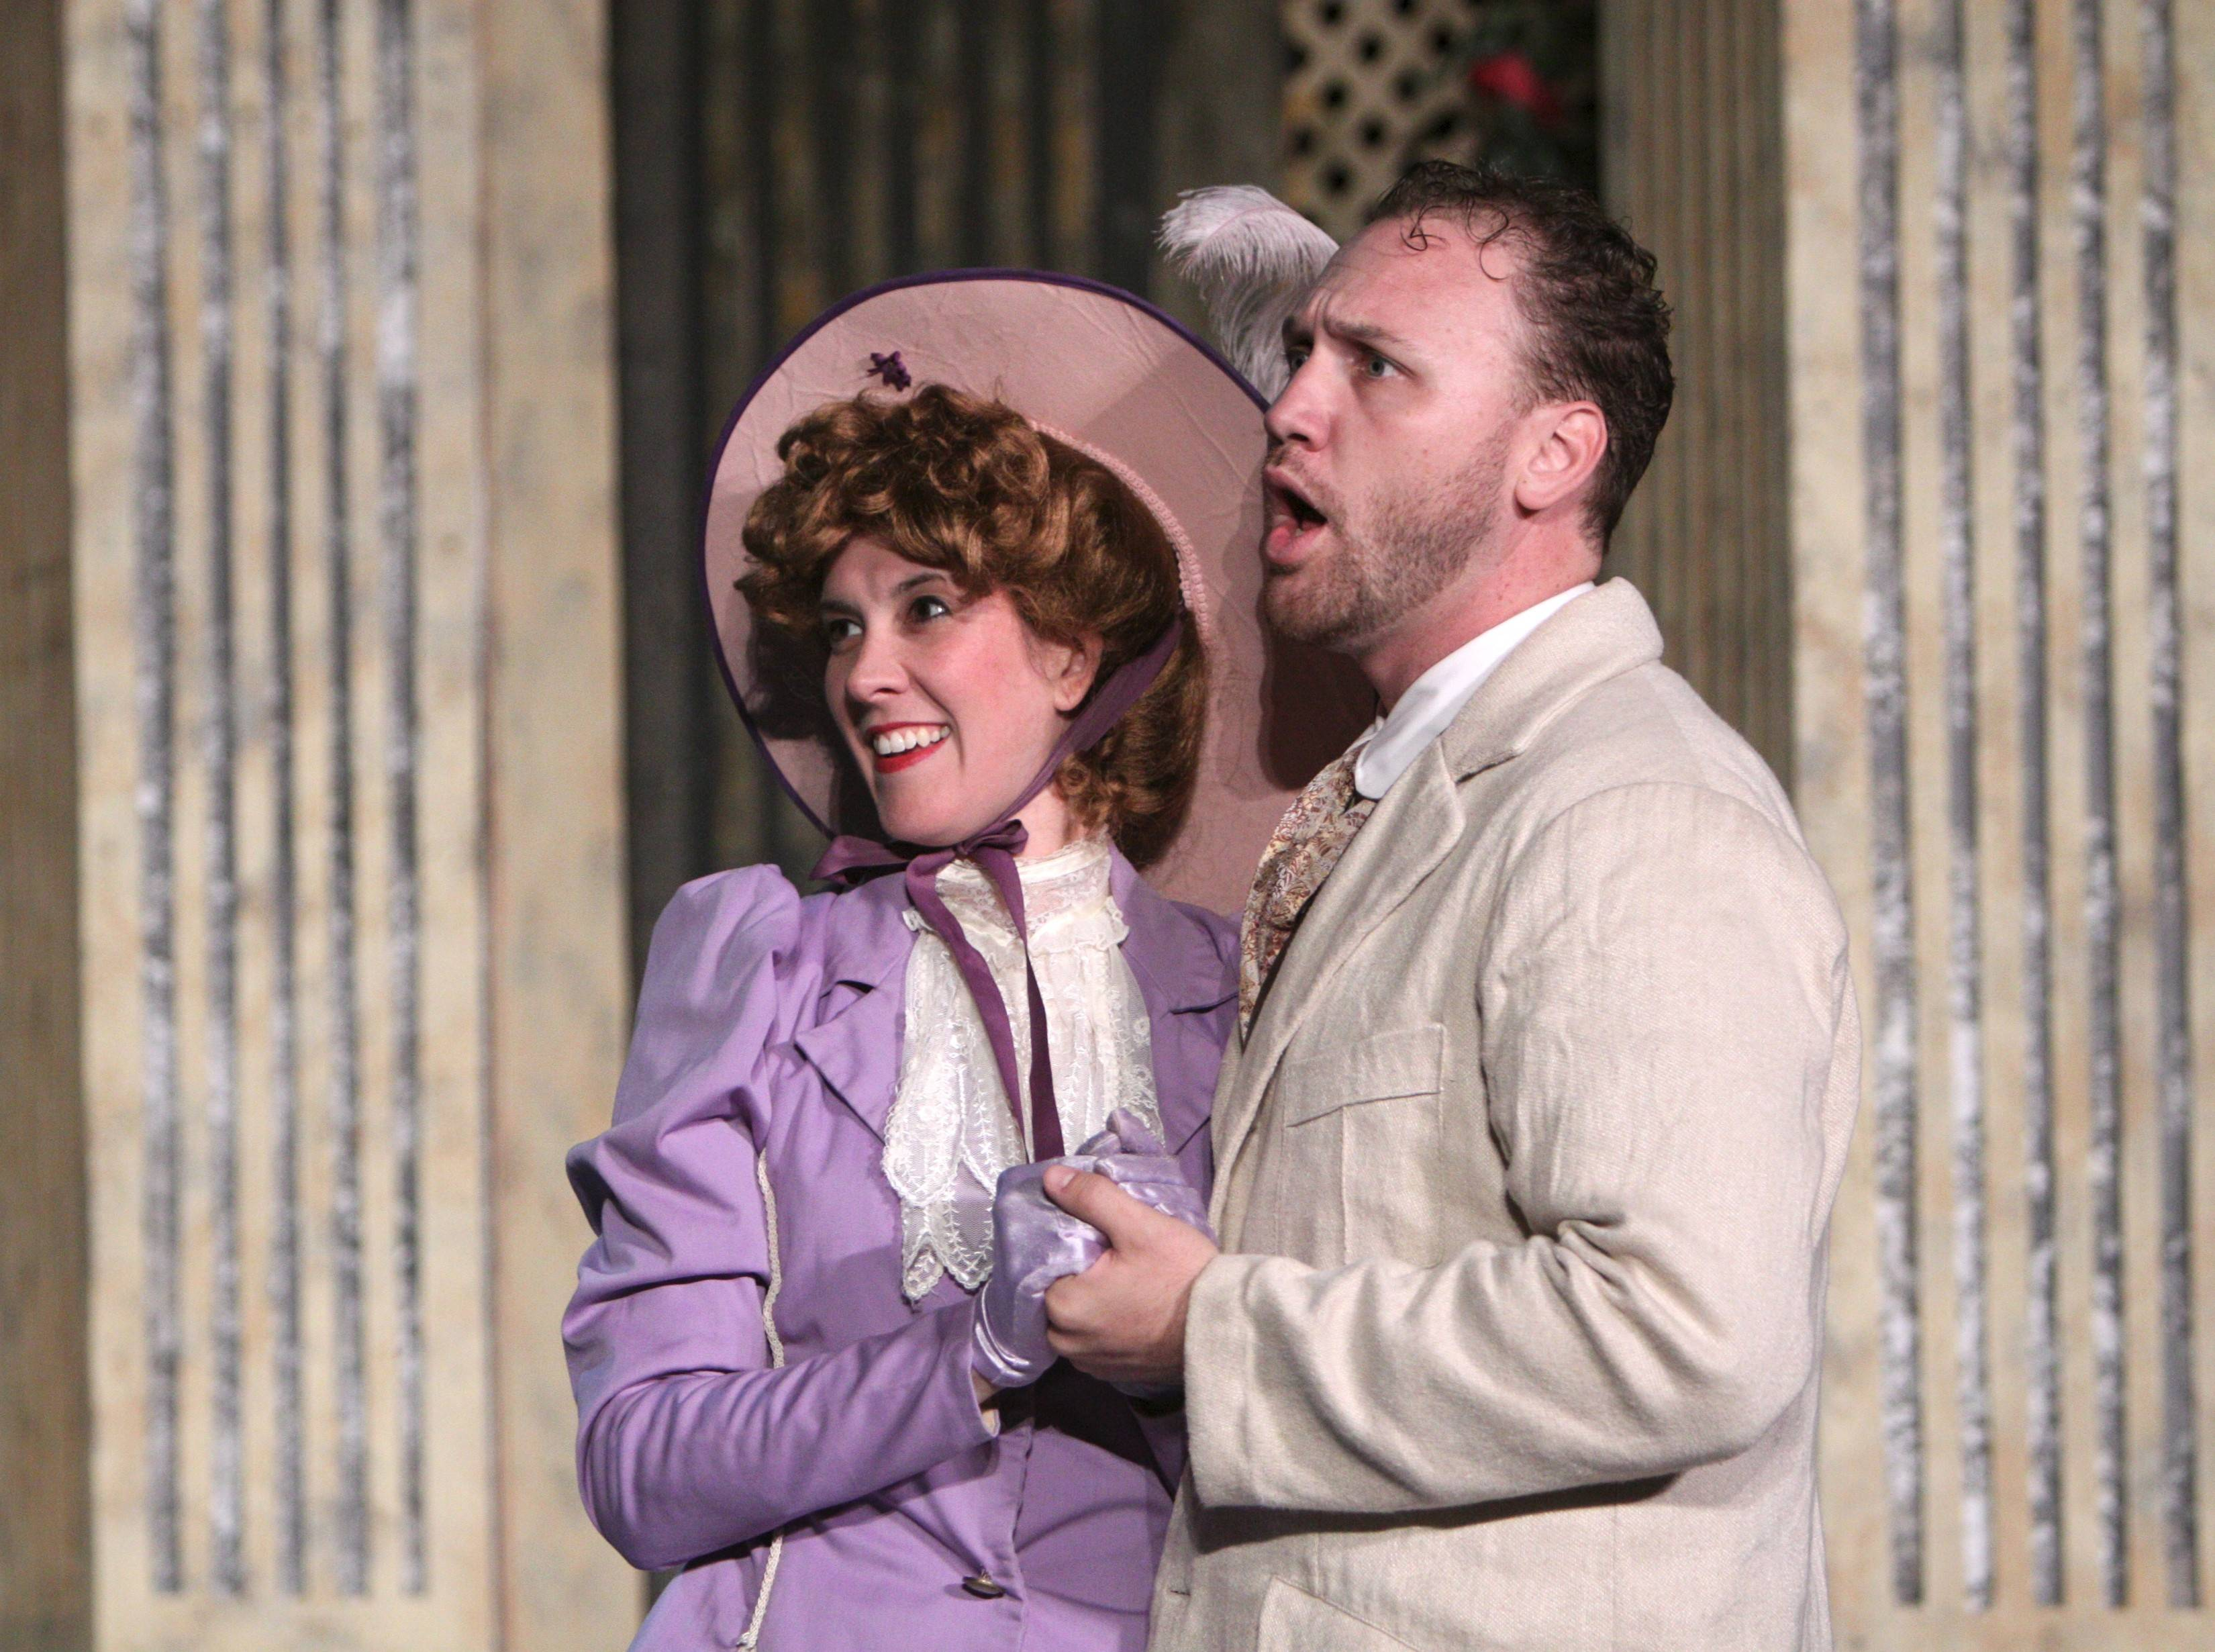 "Gwendolyn (Elise Kauzlaric) and Jack (John Crosthwaite) gleefully await an admission from the tutor Miss Prism in Oak Park Festival Theatre's outdoor production of Oscar Wilde's 1895 comedy ""The Importance of Being Earnest"" in Austin Gardens."